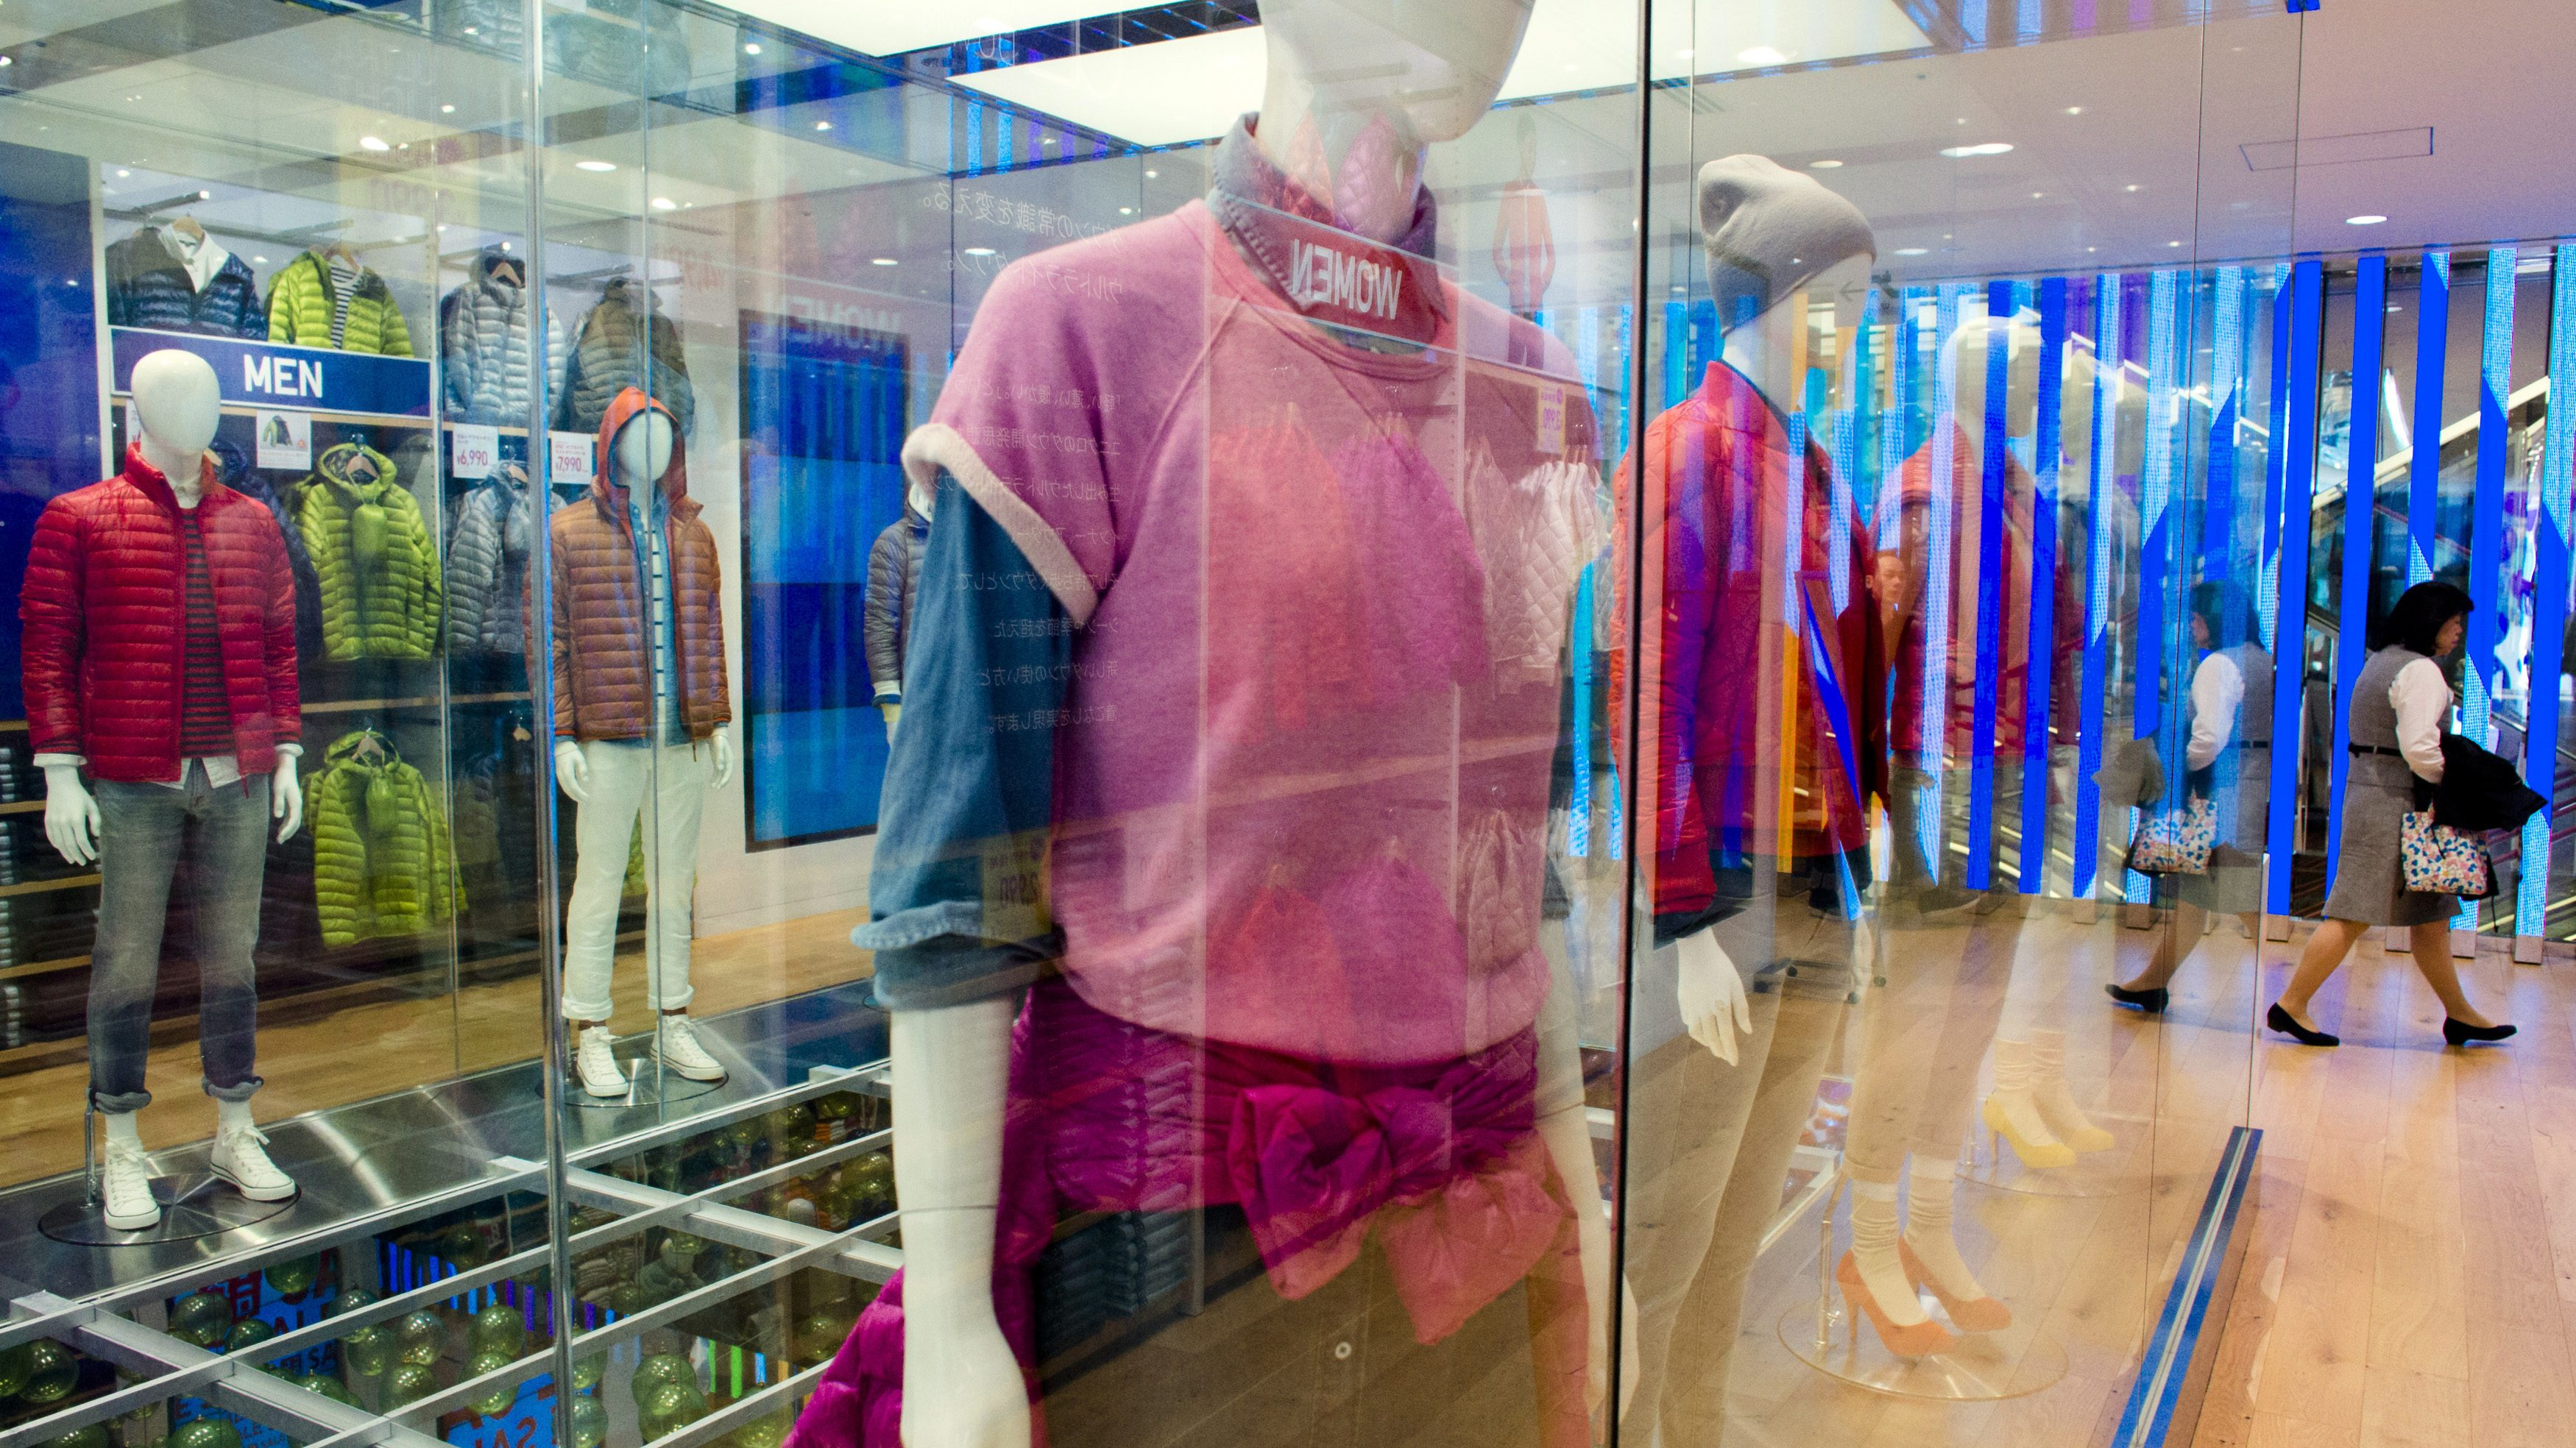 A woman walks past mannequins in brightly colored clothes